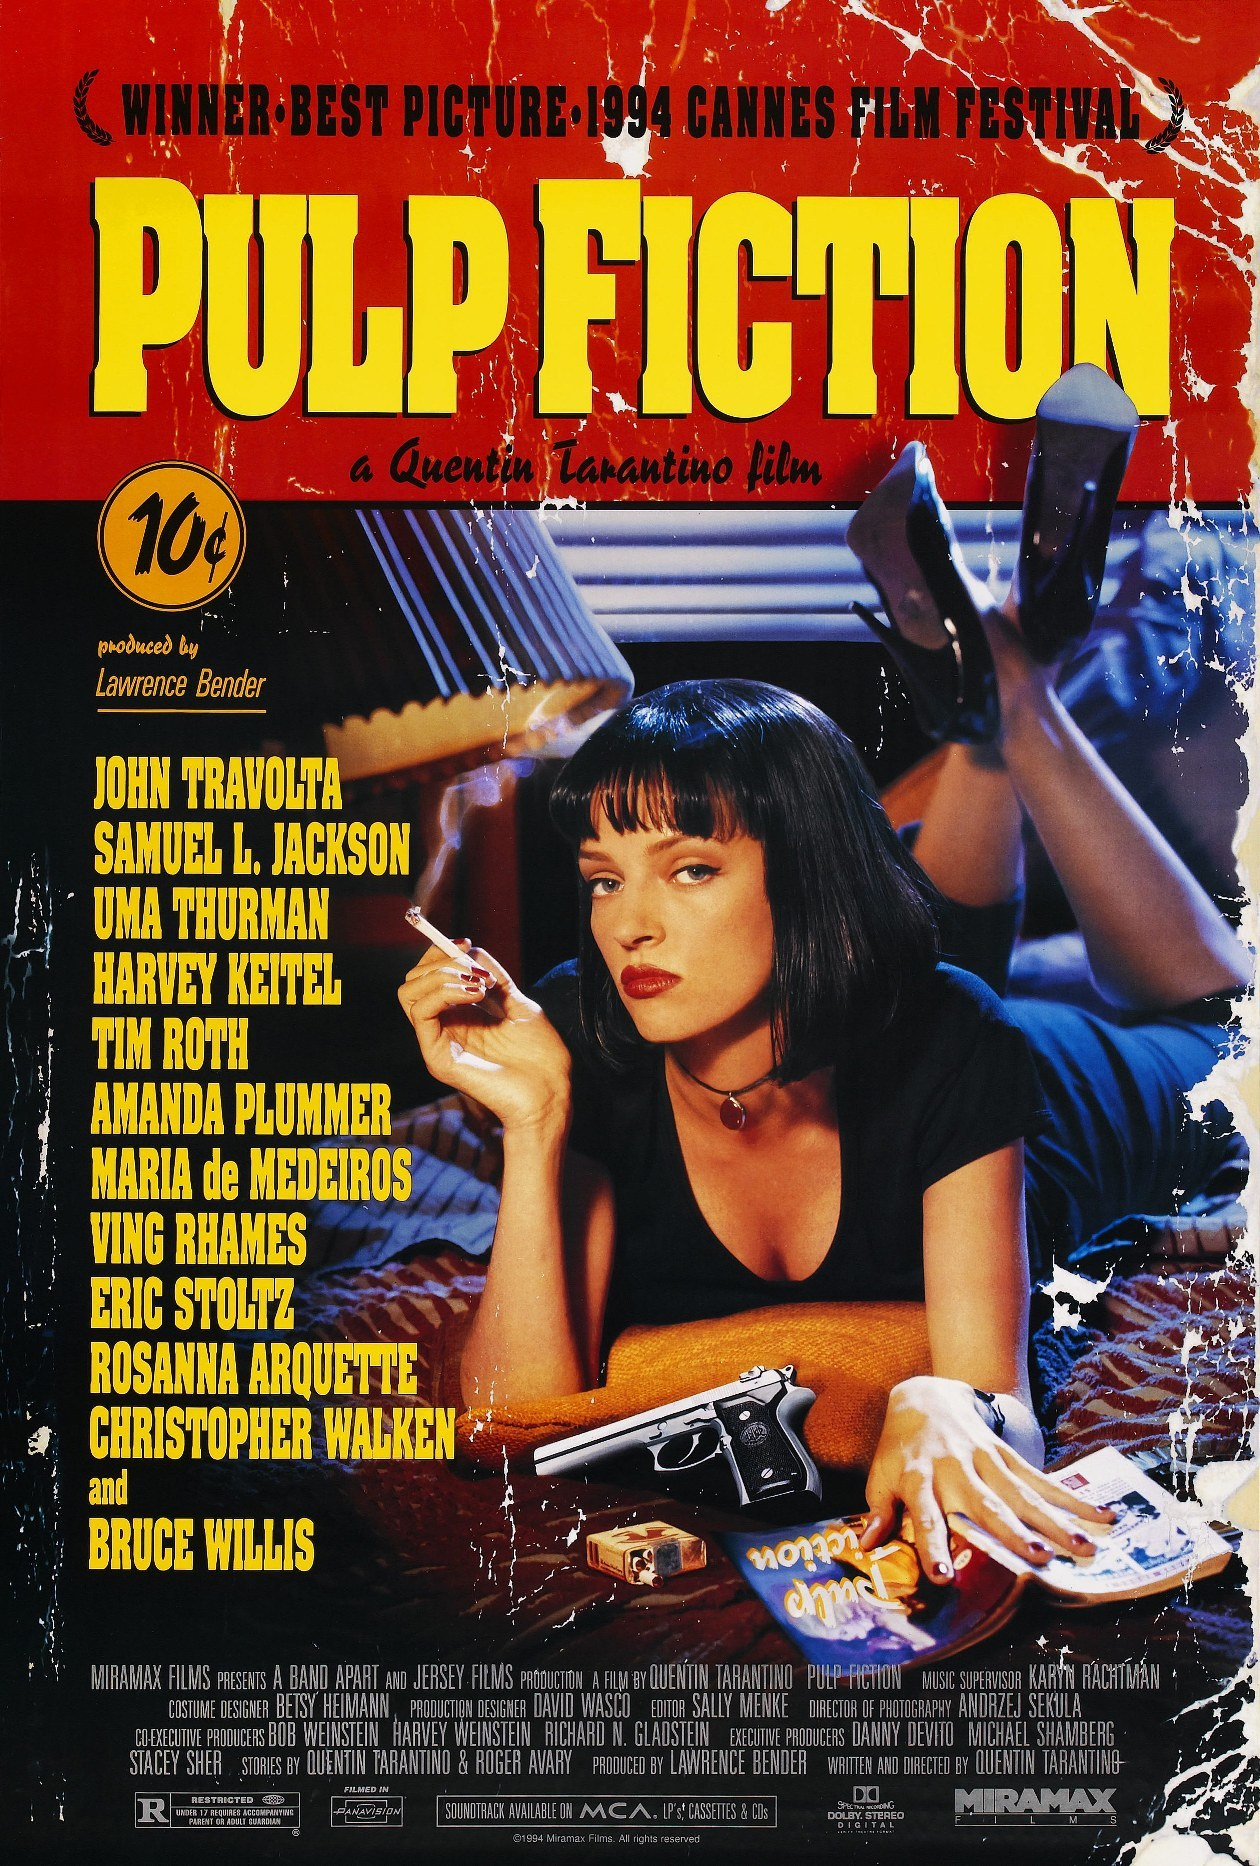 13. Pulp Fiction Arguably writer/director Quentin Tarantino's best movie, Pulp Fiction is just an iconic piece of American cinema history. I watched it again today because I learned that some hallmates of mine has never seen it before. I'm glad they saw it and they enjoyed it. Pulp Fiction, like other Tarantino films, is not for everybody, but if you can stand Tarantino's brand of humor and violence then you owe it to yourself to watch Pulp Fiction.